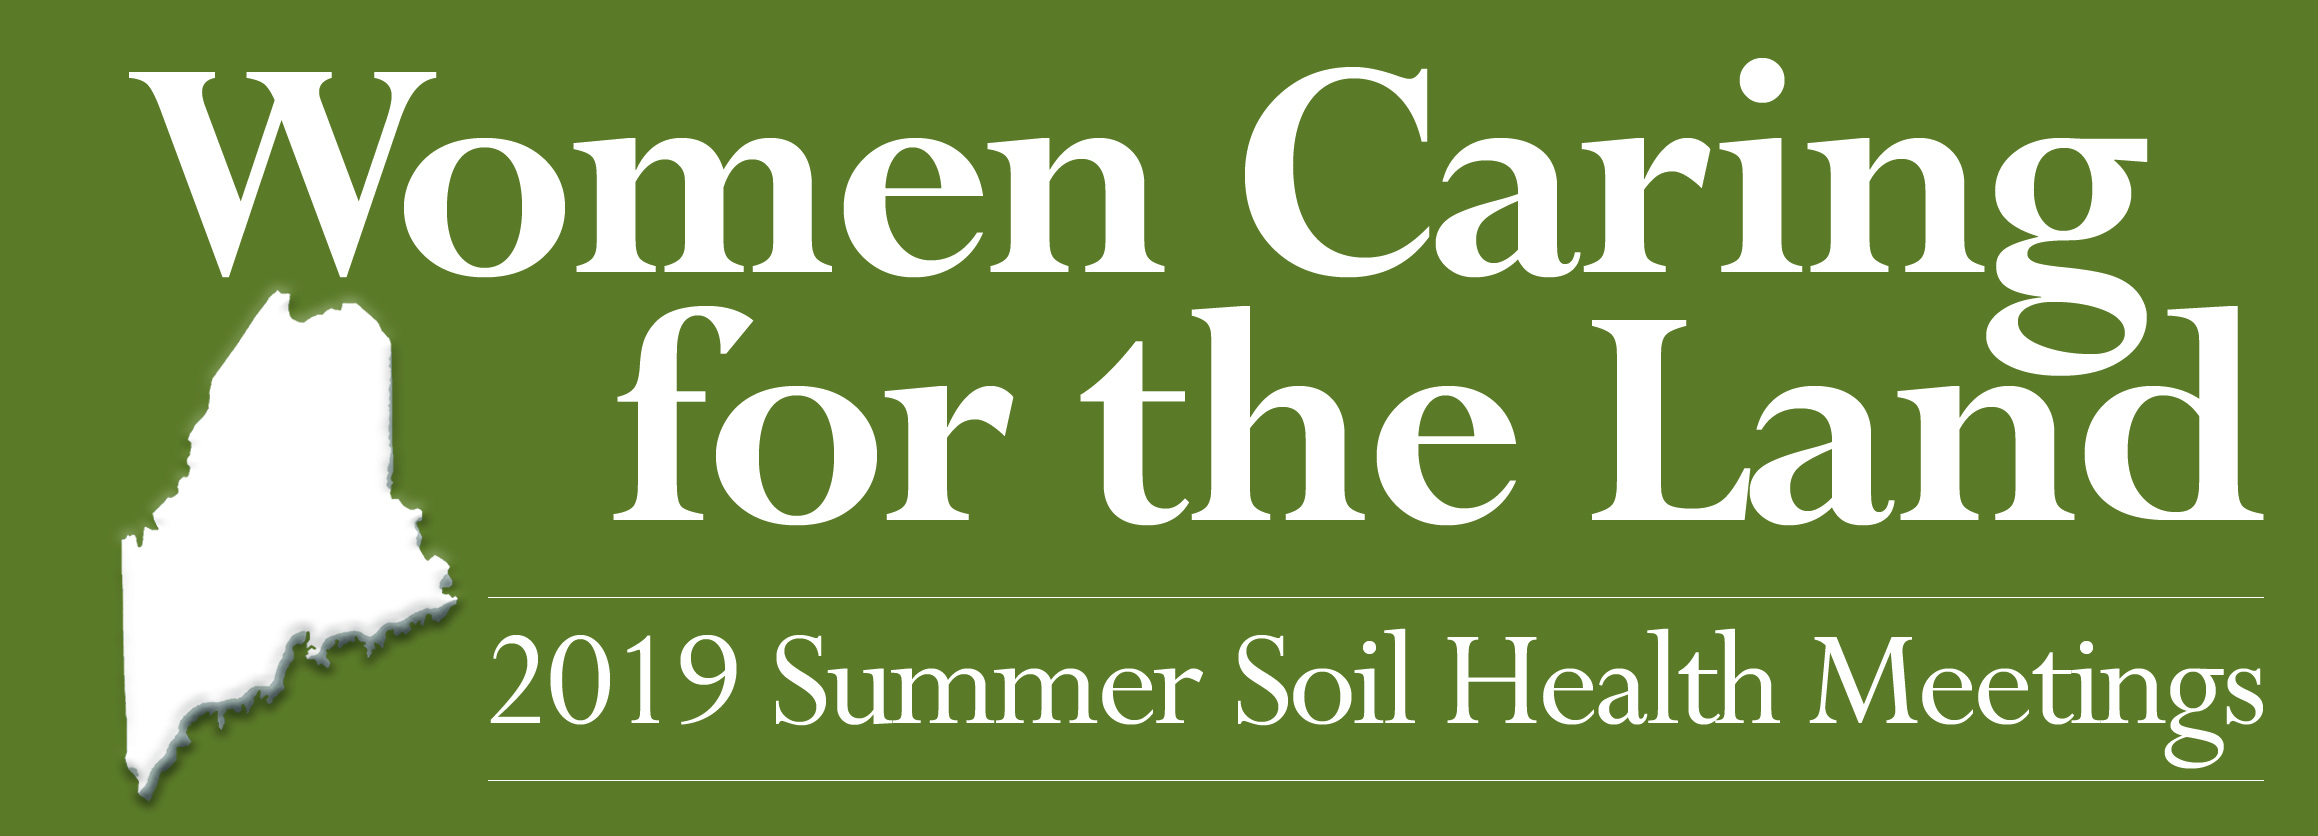 Women Caring for the Land: 2019 Summer Soil Health Meetings